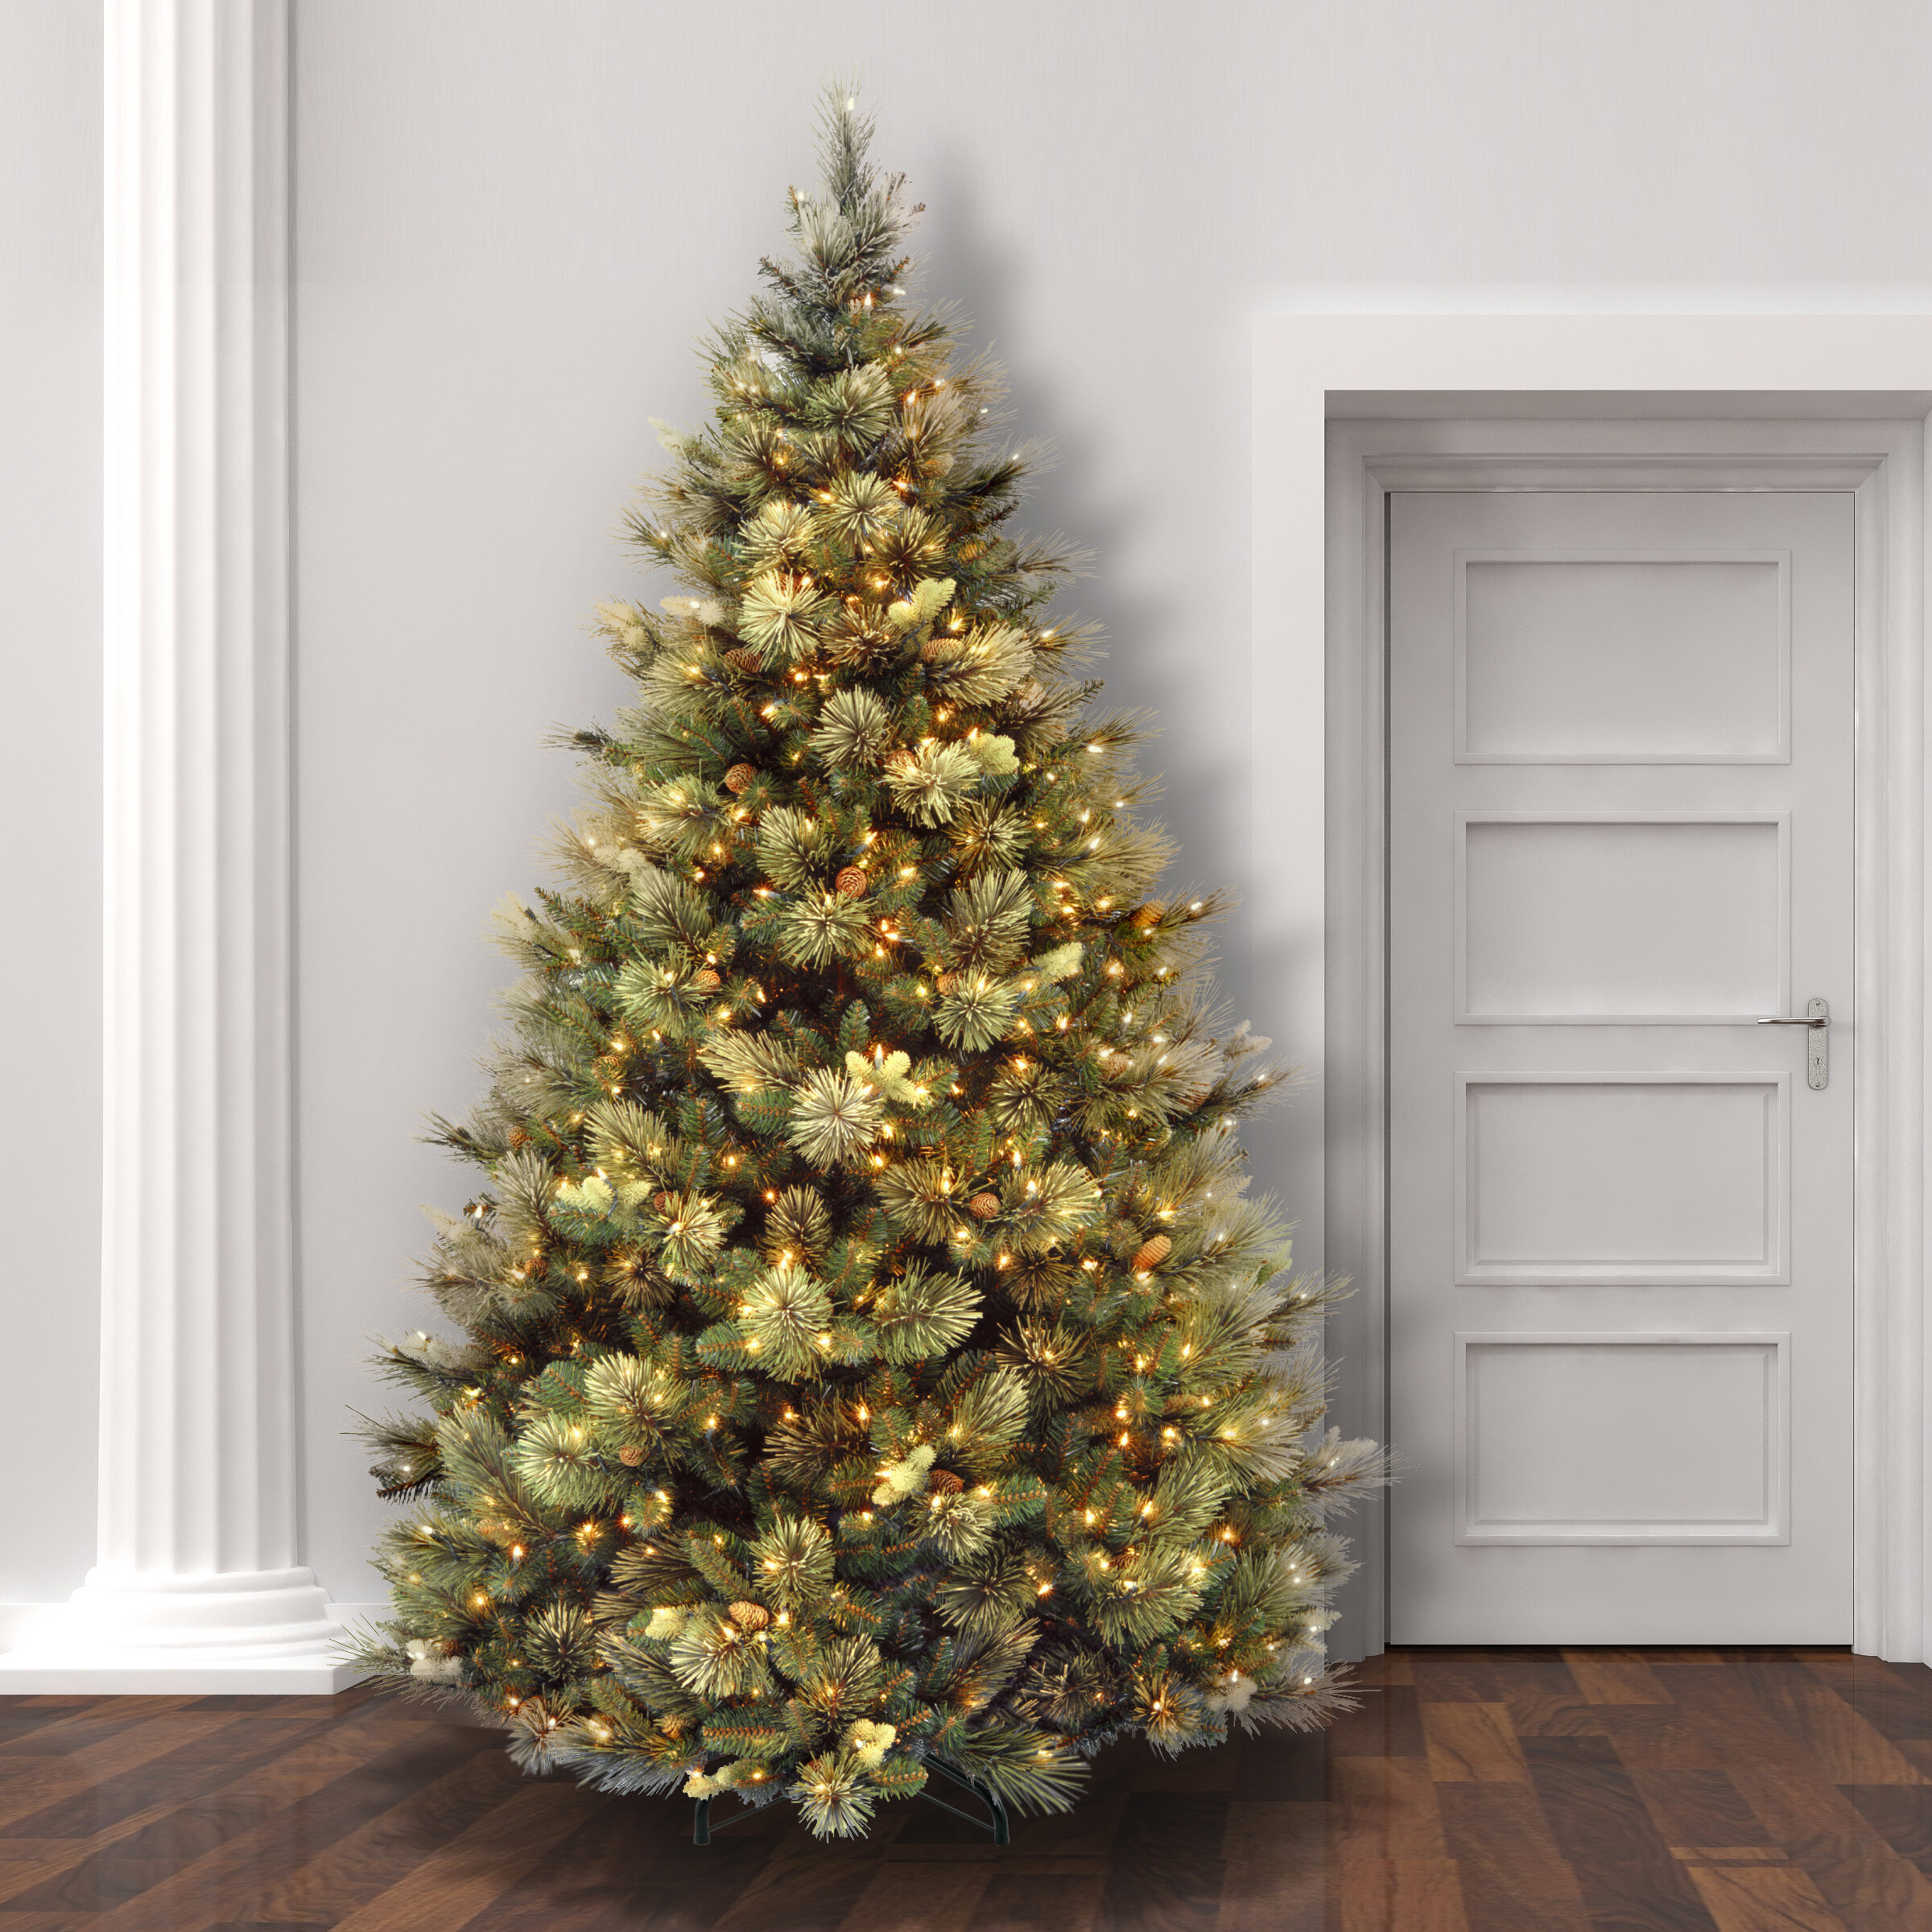 laurel foundry modern farmhouse green pine trees artificial christmas tree with clearwhite lights reviews wayfair - Photos Of Christmas Trees